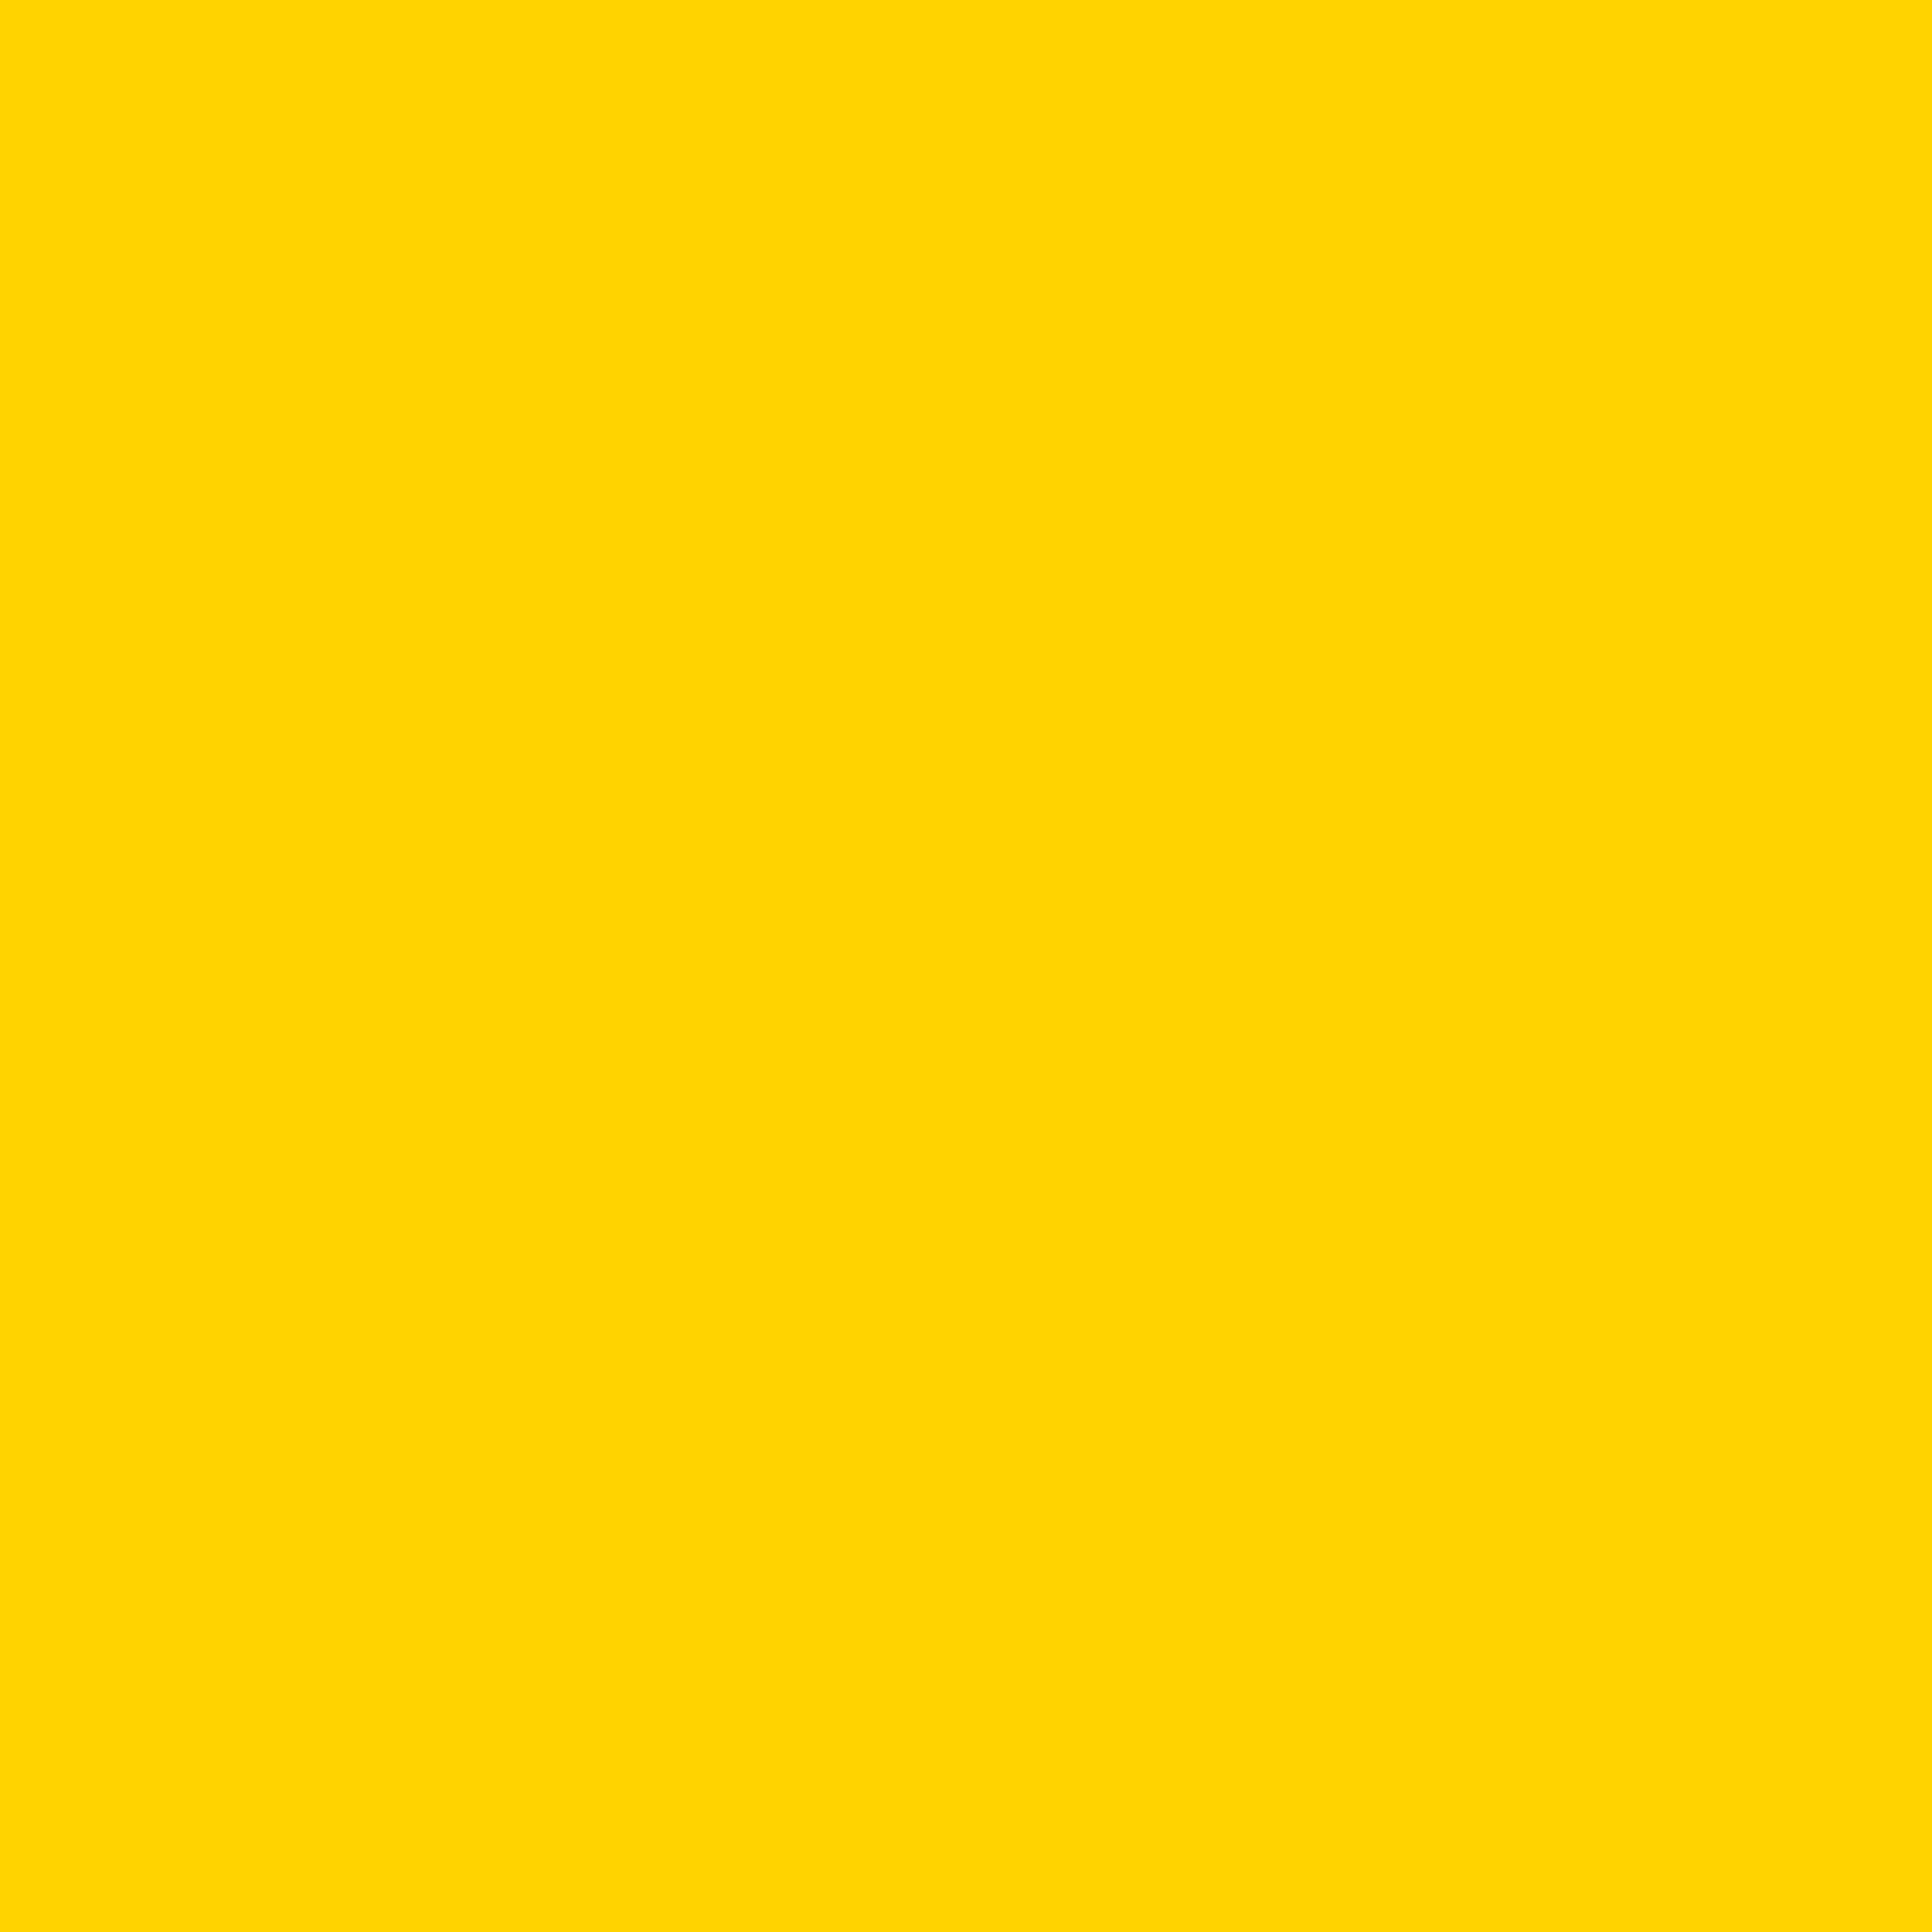 2732x2732 Cyber Yellow Solid Color Background